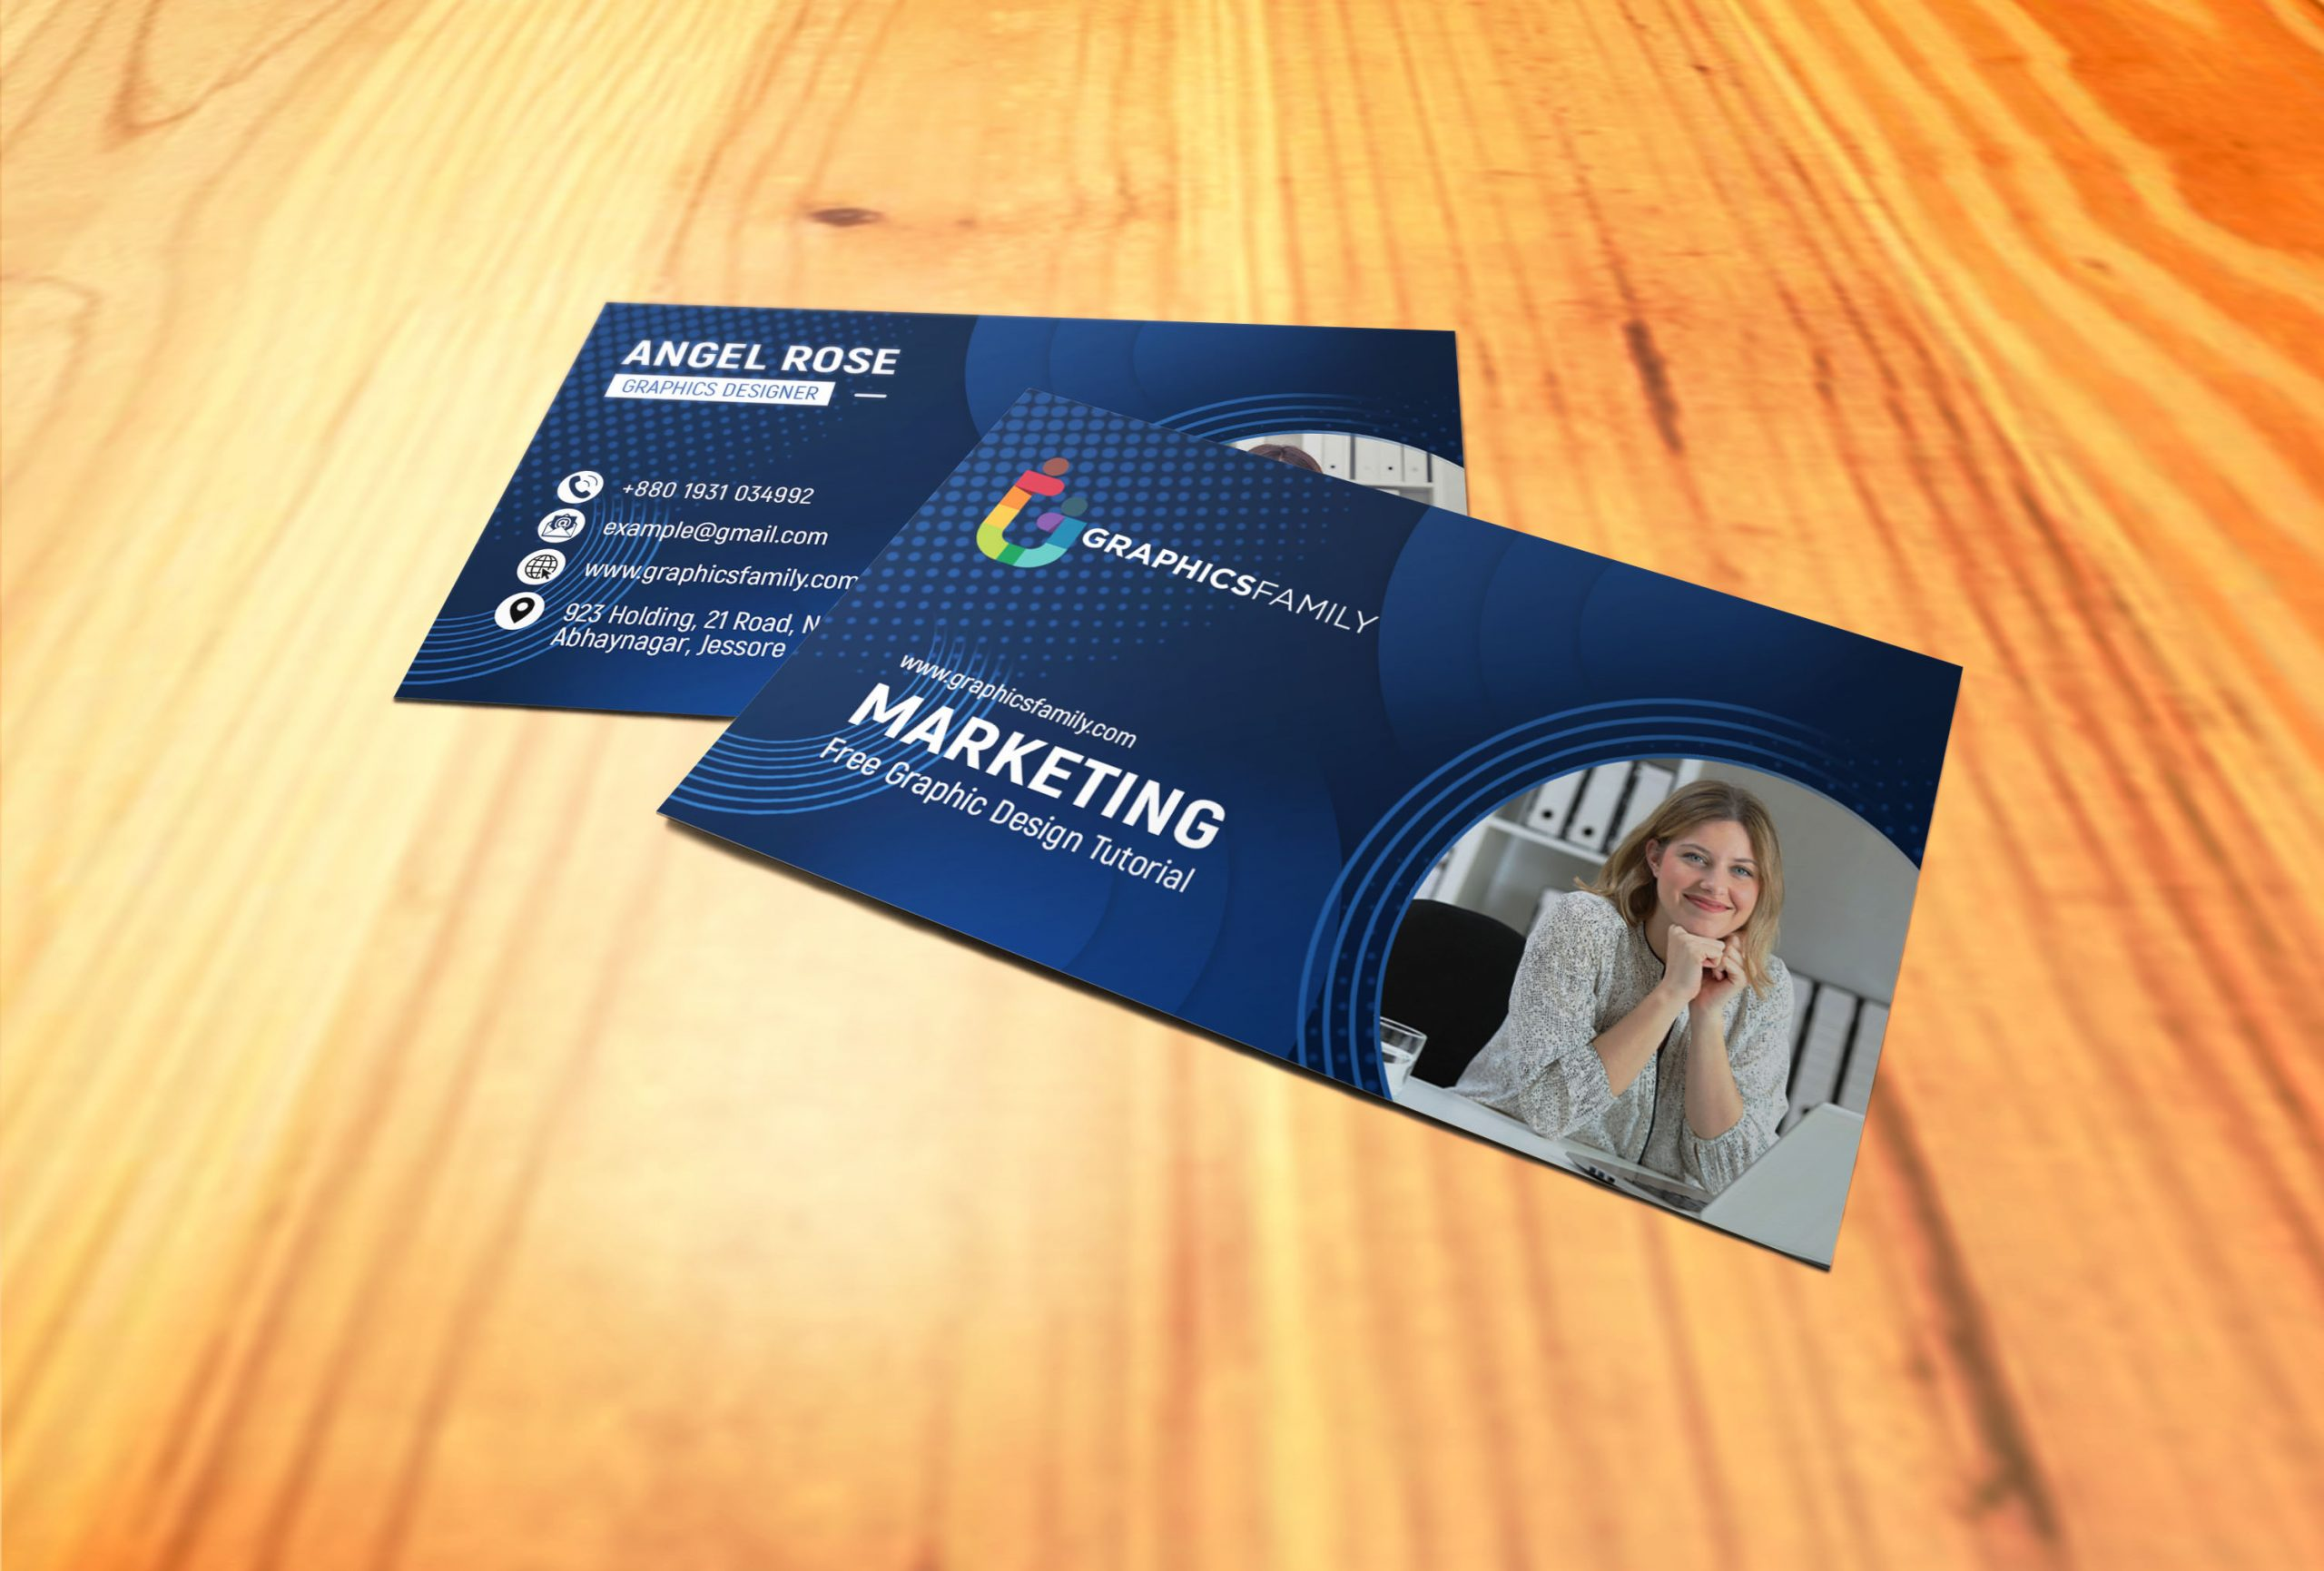 Marketing & Communications Business Cards Template Download